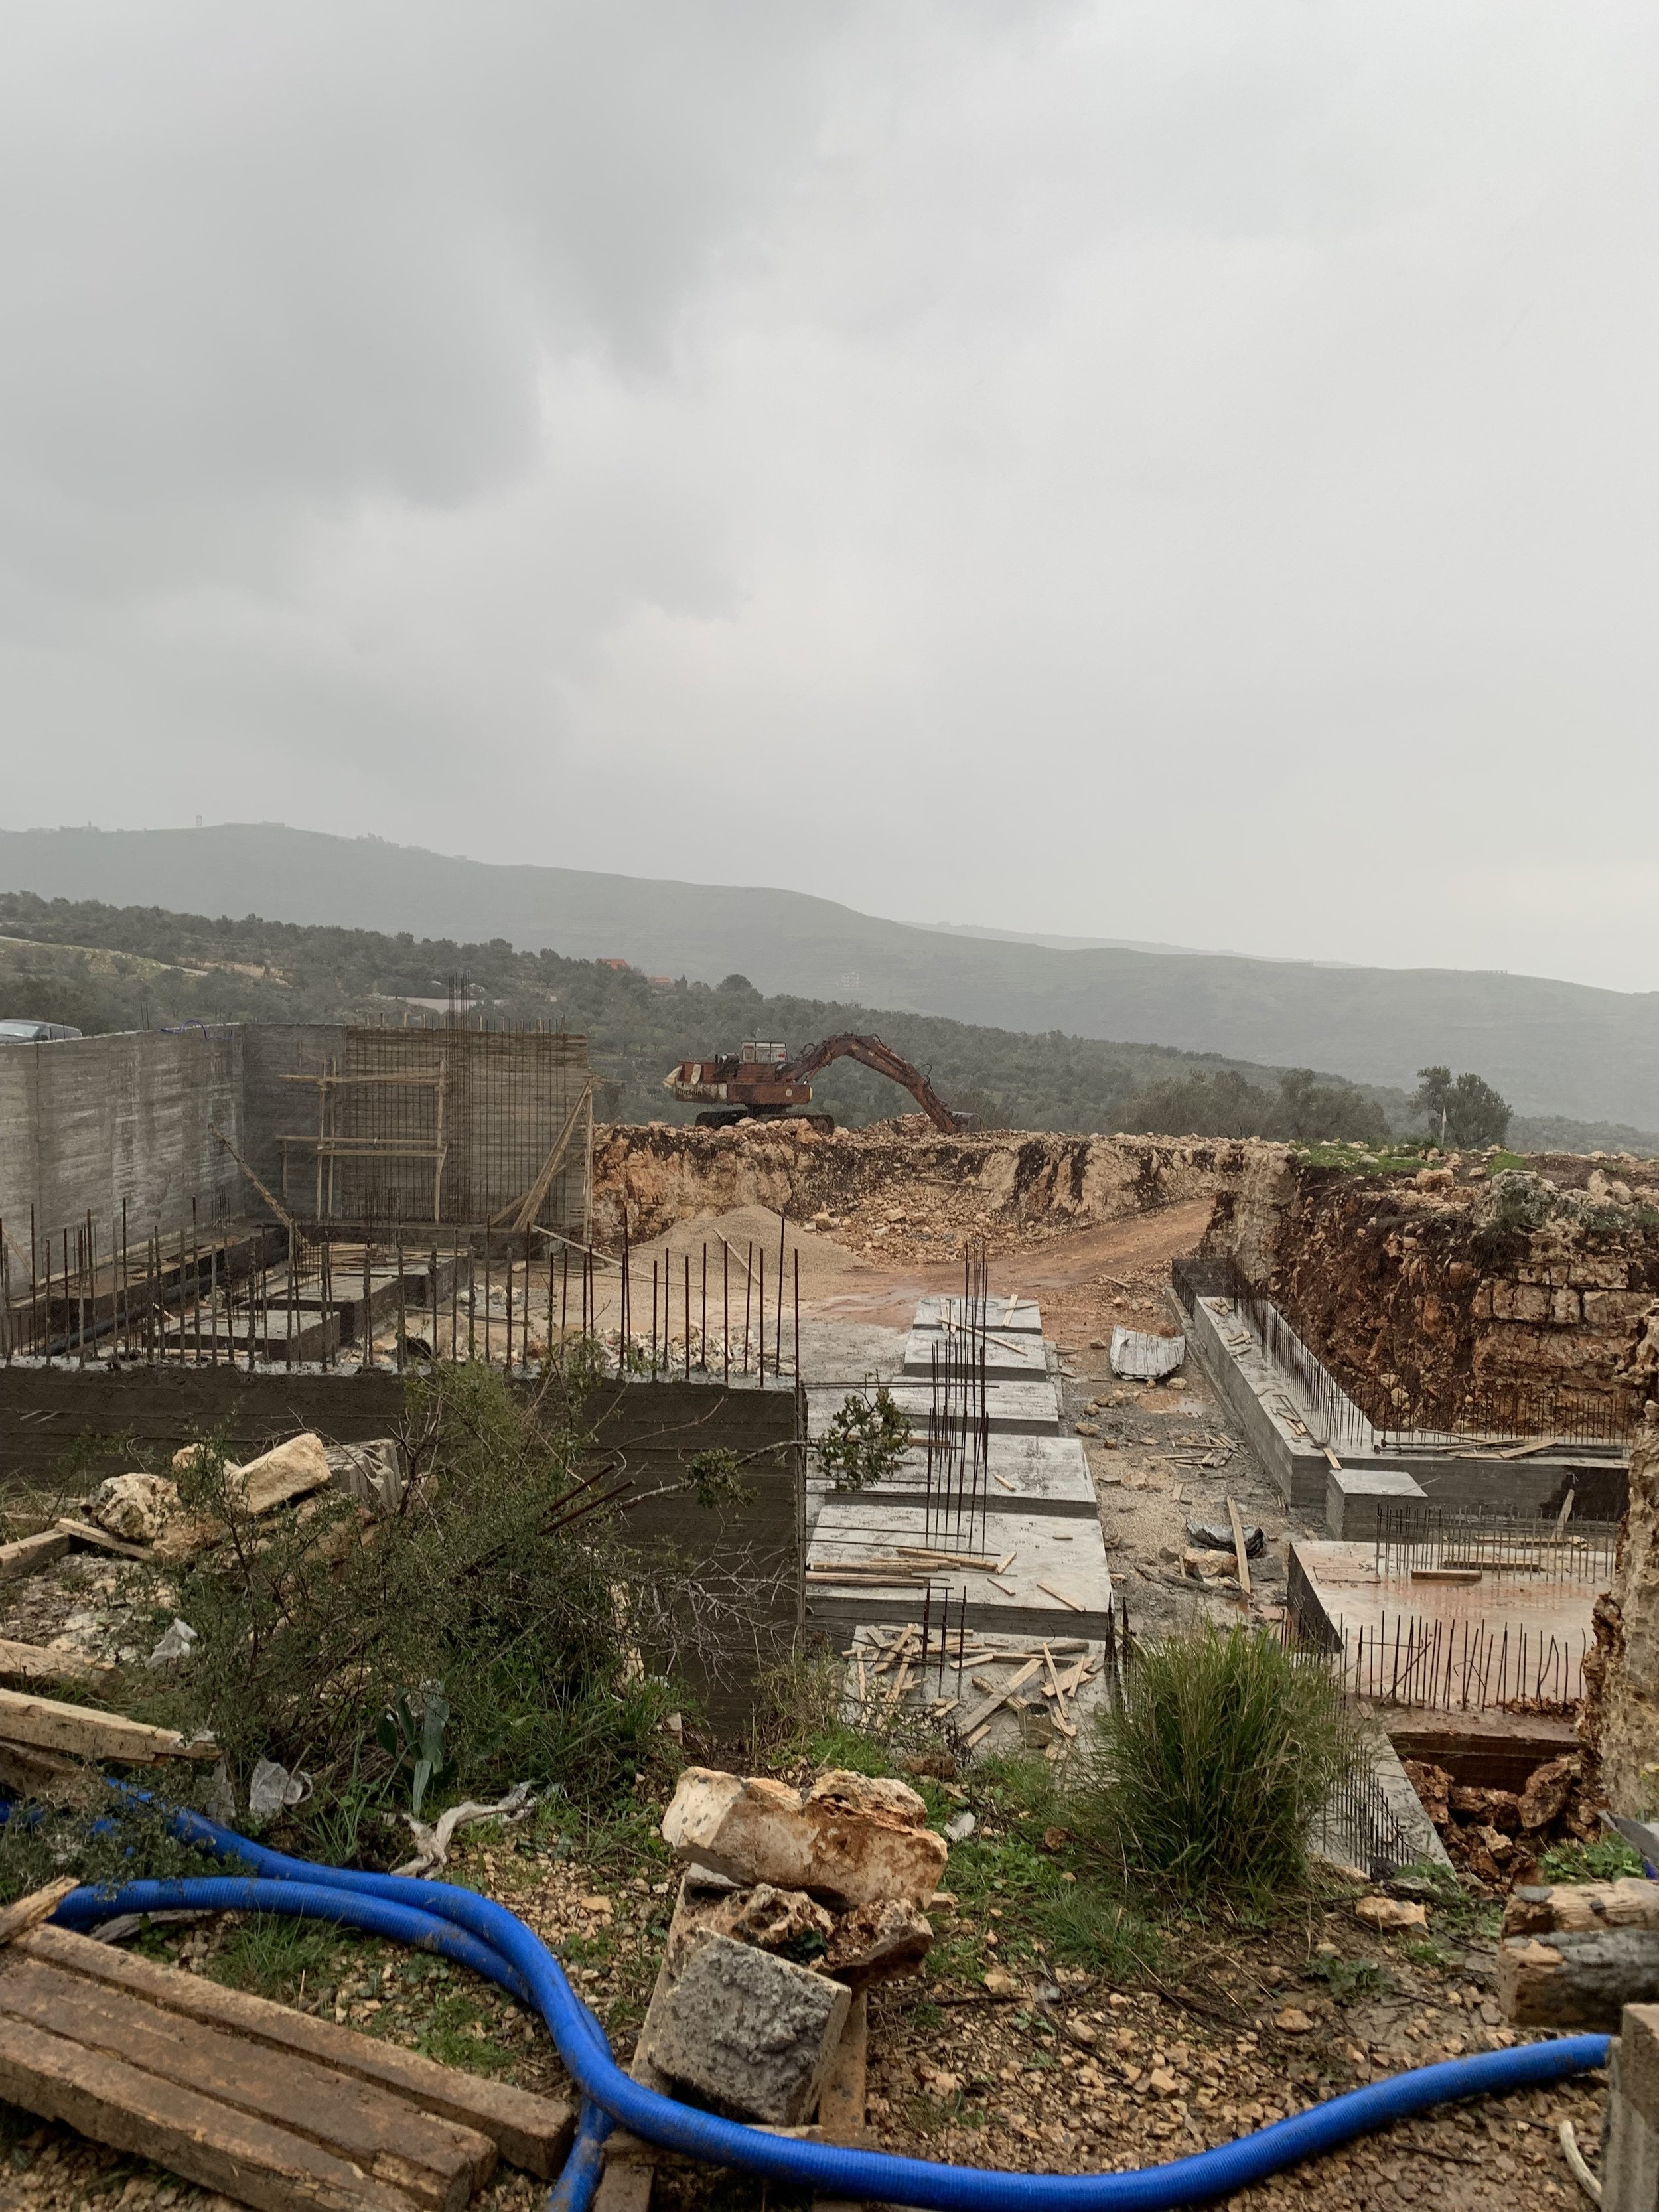 Overview of construction site